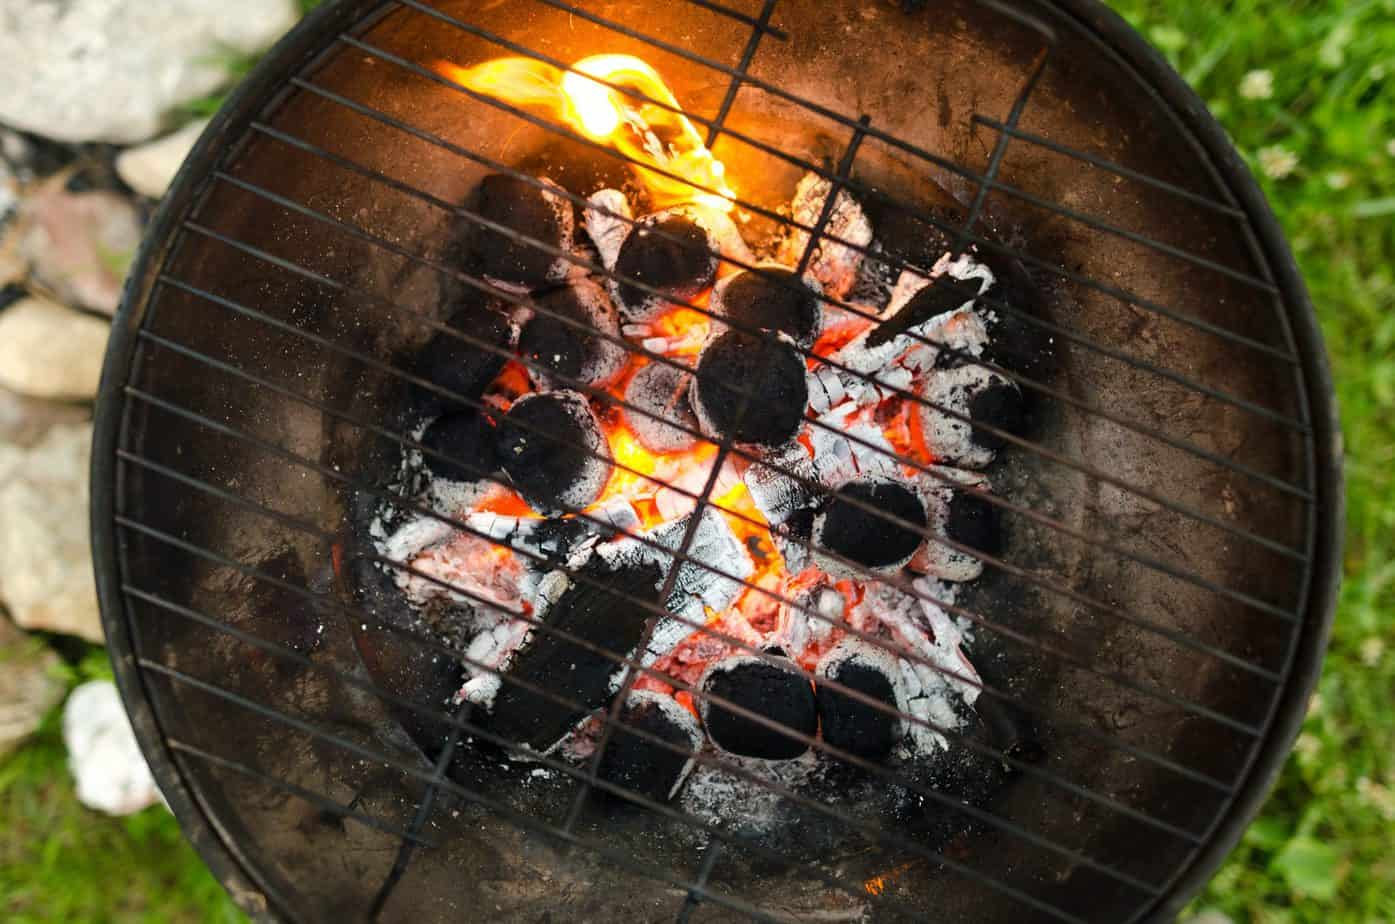 how to start charcoal grill without lighter fluid